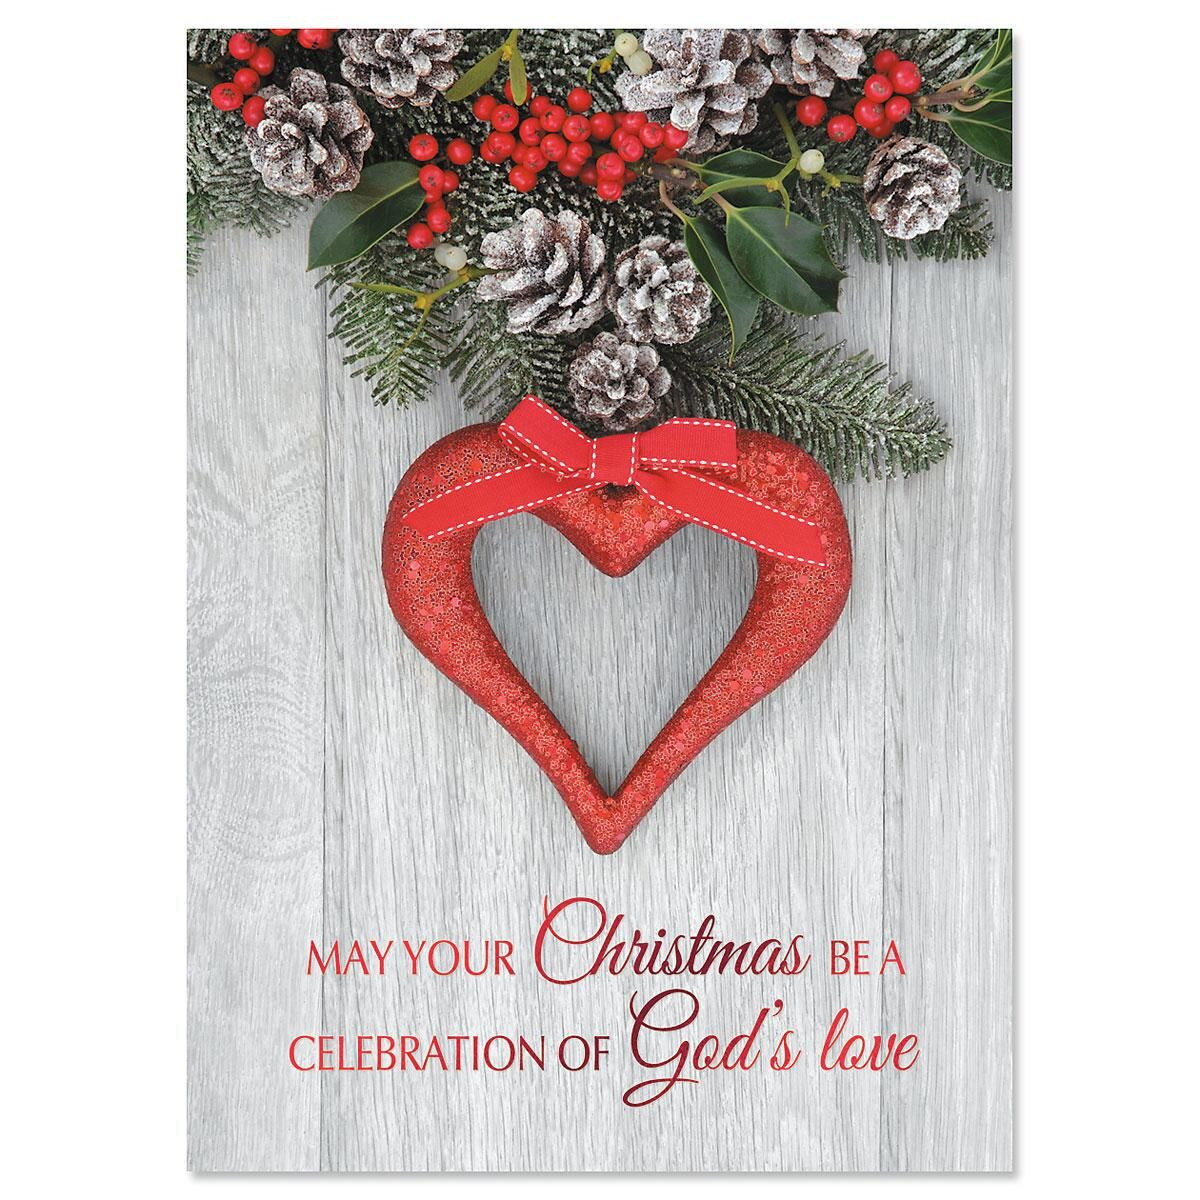 Greatest Gift Deluxe Christmas Cards - Set of 14